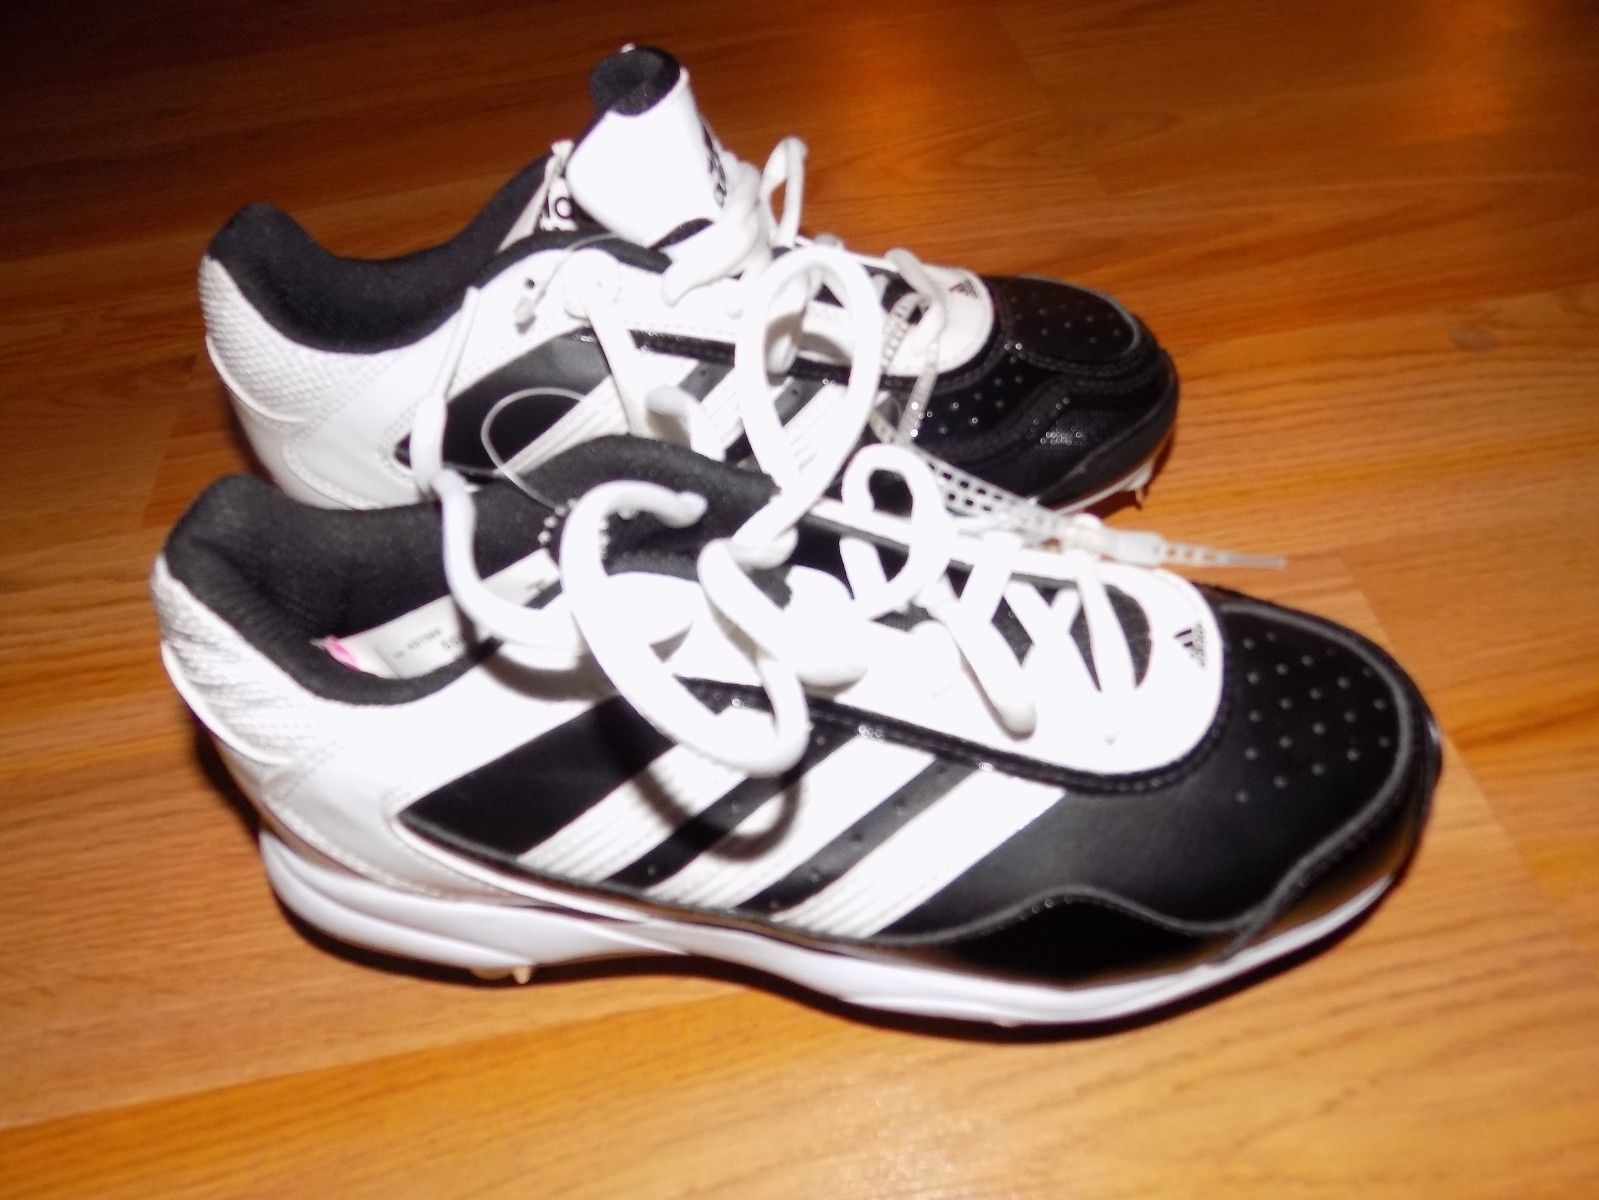 Size 5 Adidas Abbott Pro Metal 2 Softball Cleats Shoes Black White New